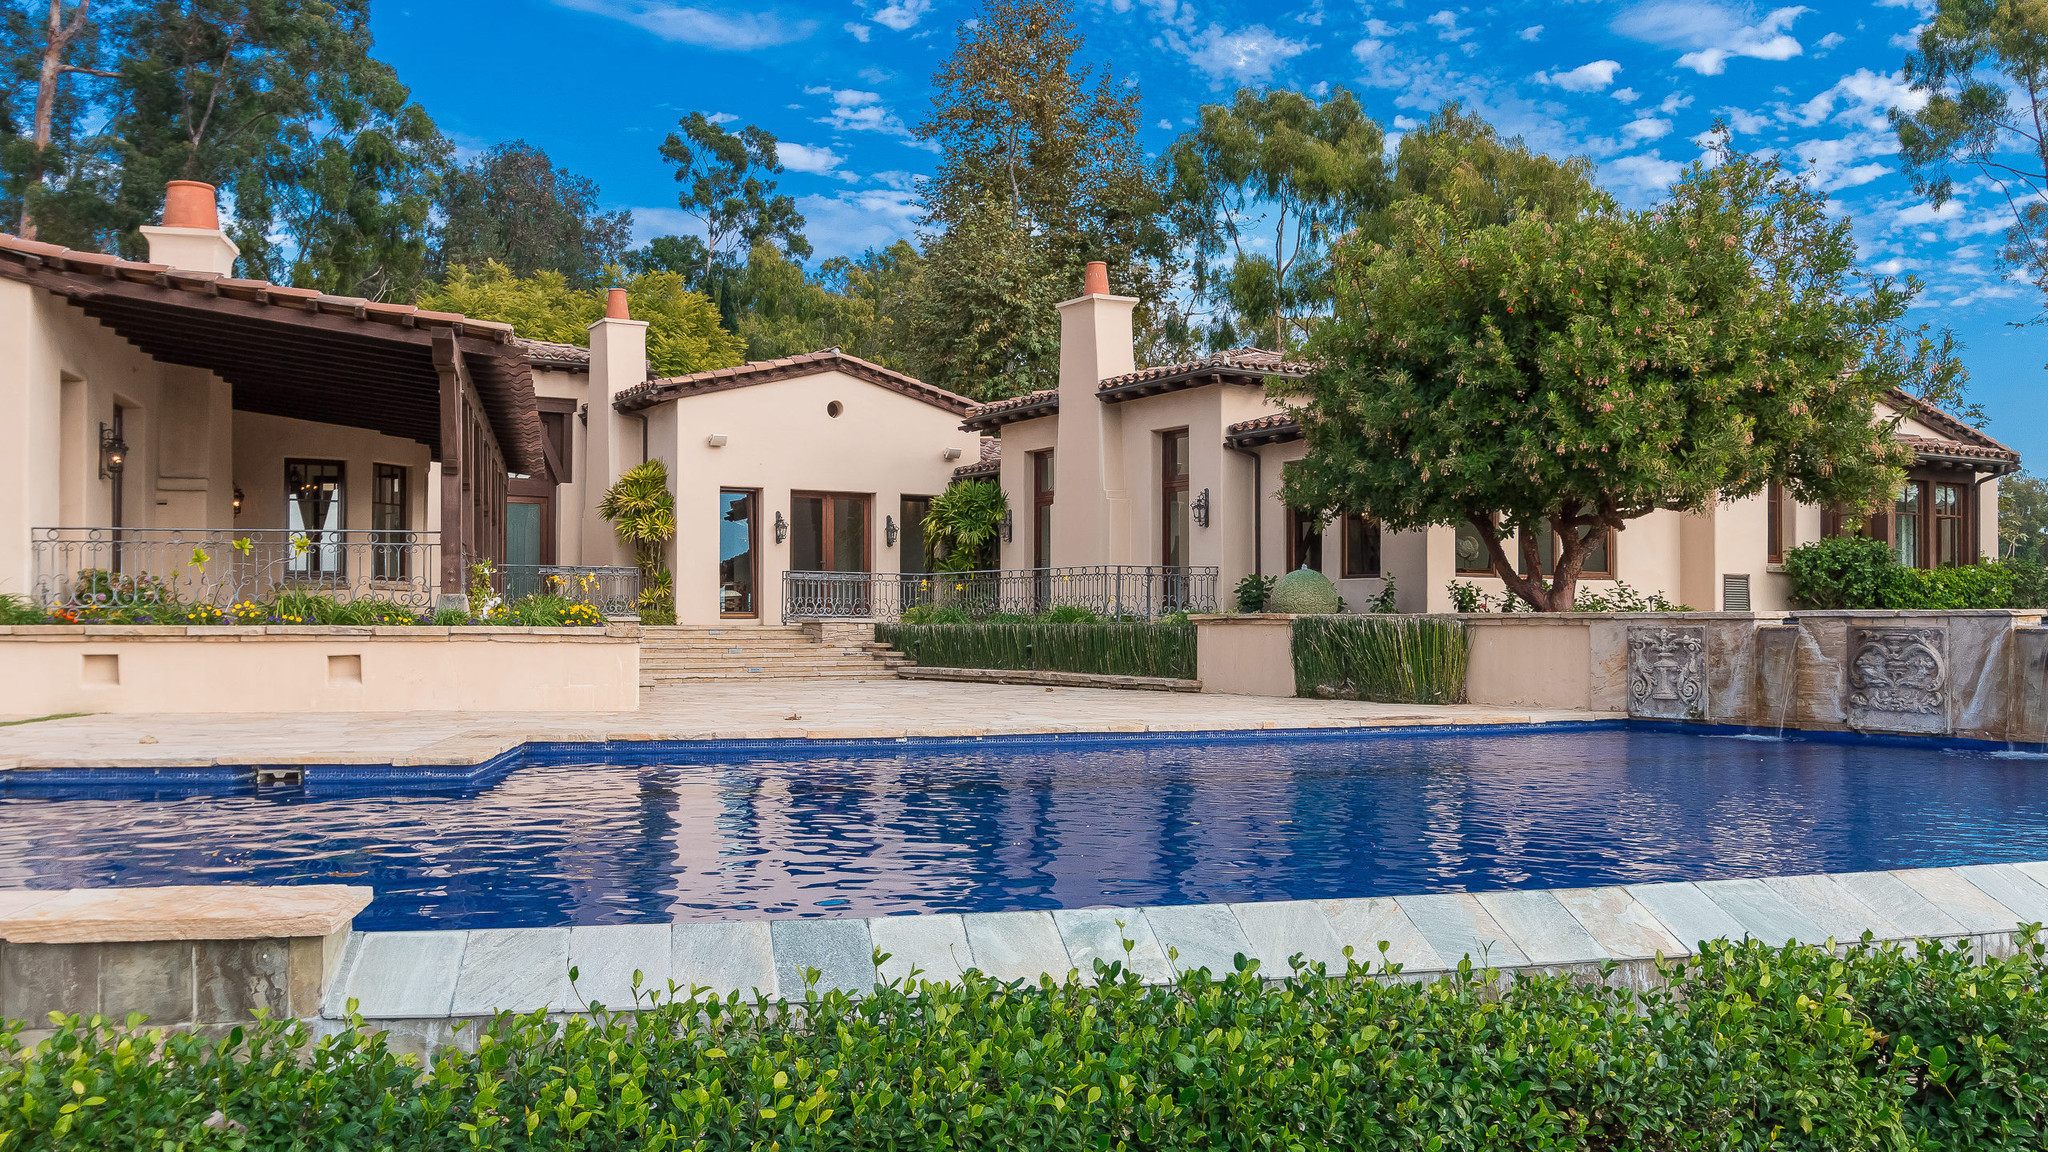 Pga golfer phil mickelson prices rancho santa fe estate at for What is an estate house